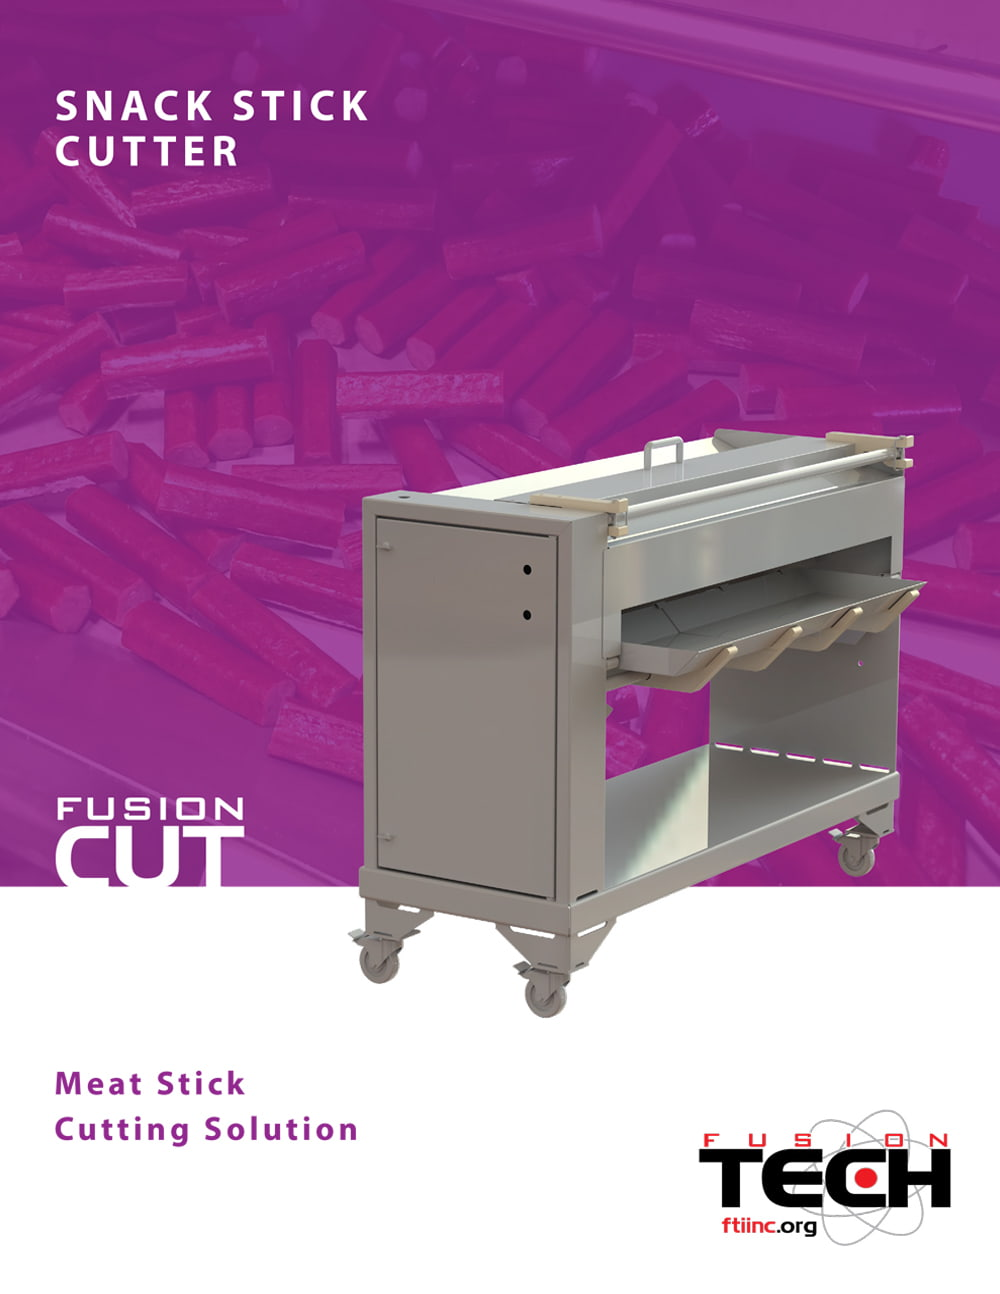 snack stick cutter from Fusion Tech